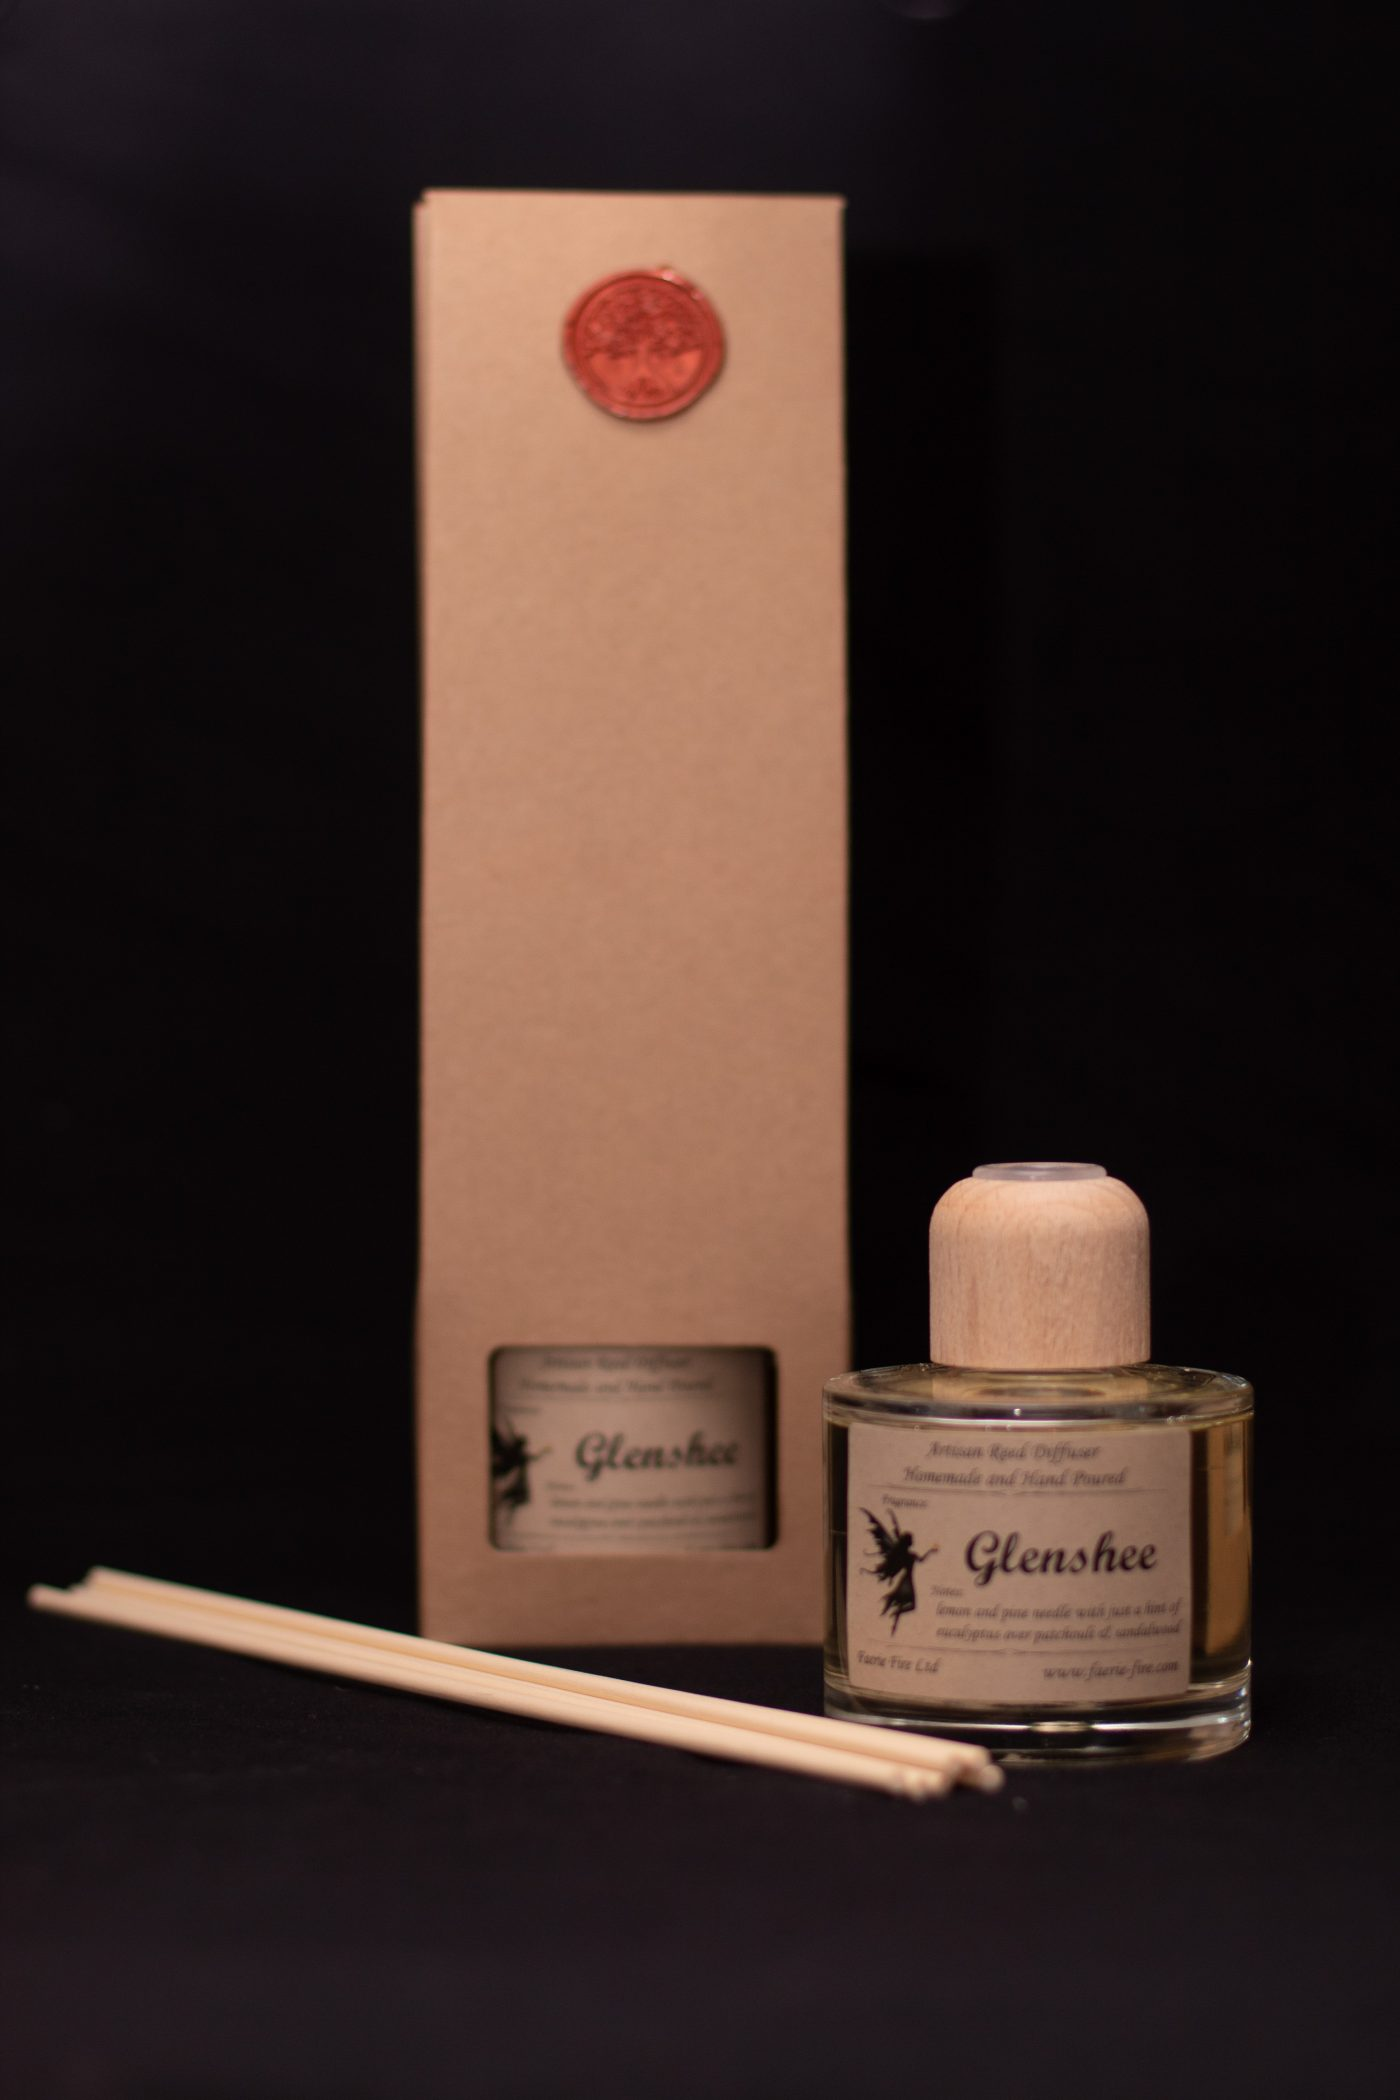 Glenshee Reed Diffuser scaled